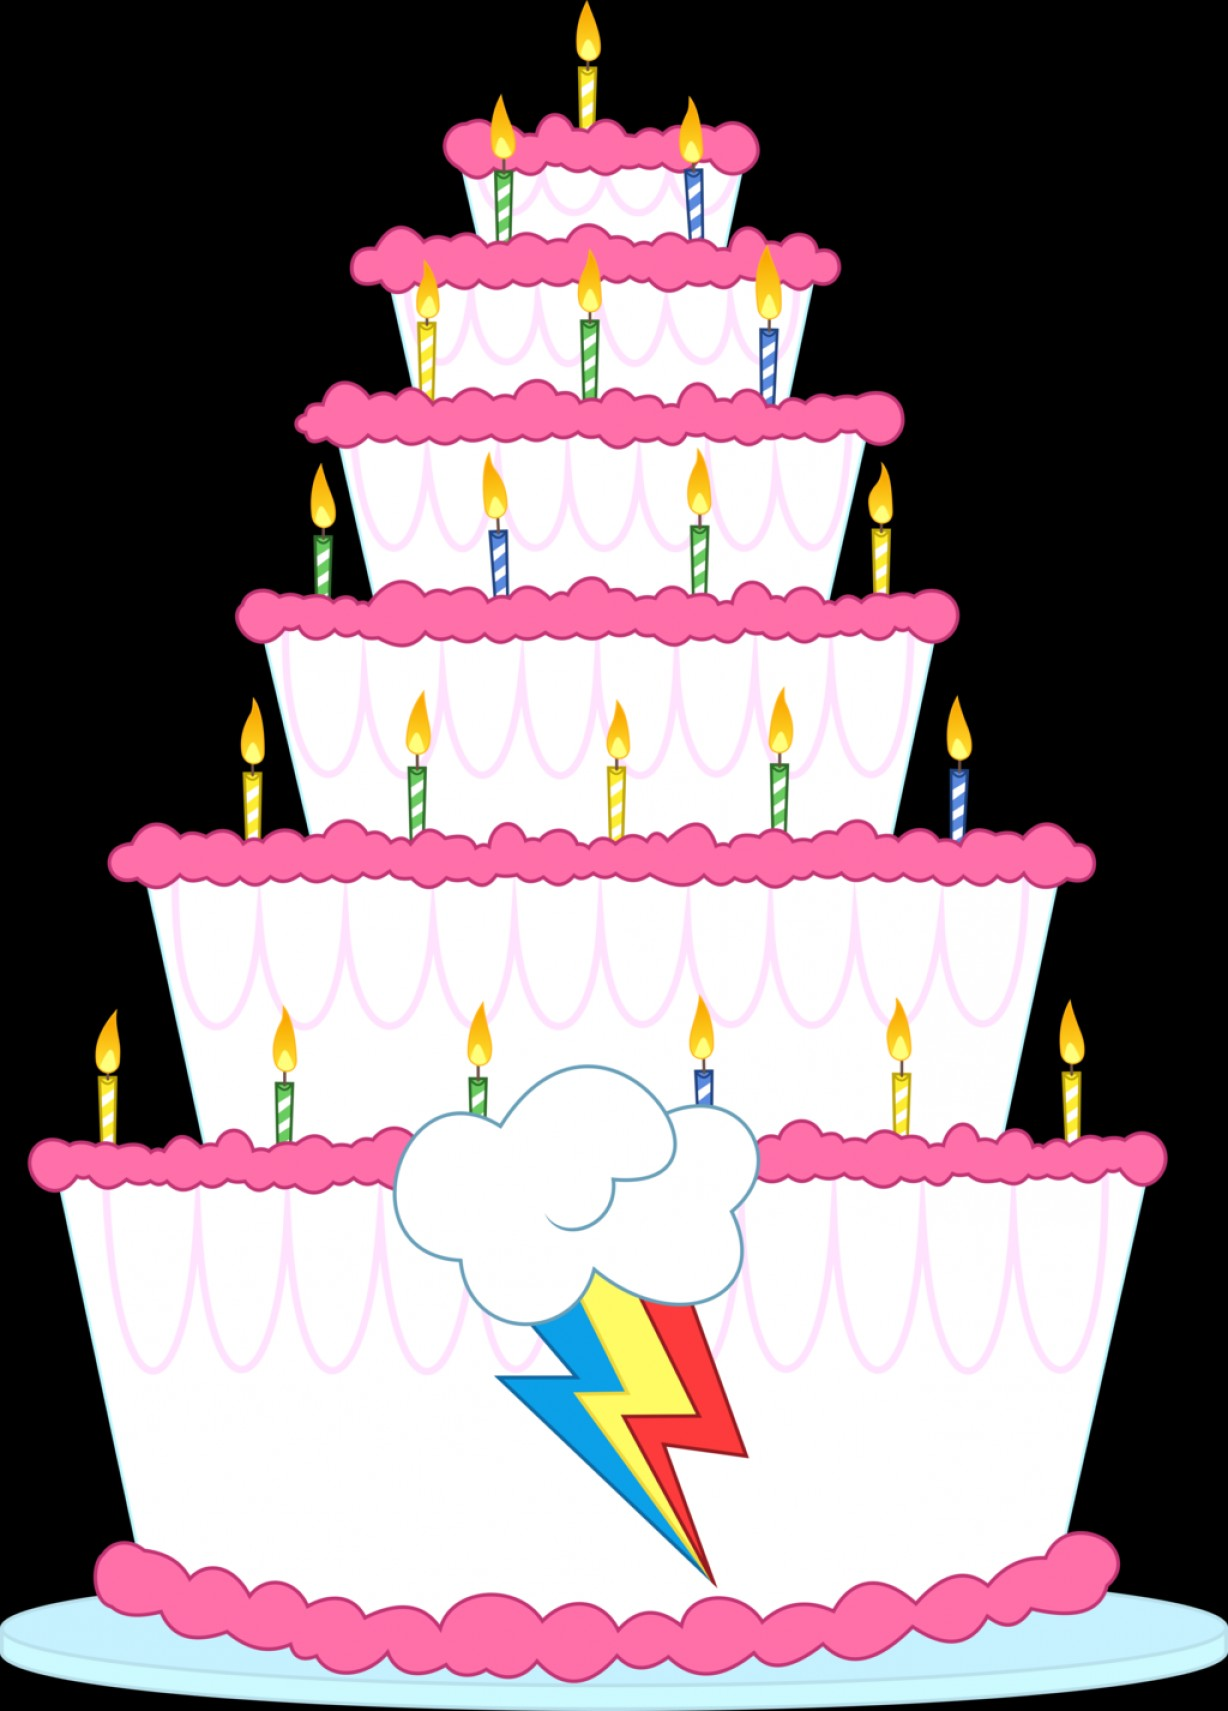 MLP Cake Vector: Rainbow Dash S Birthday Cake